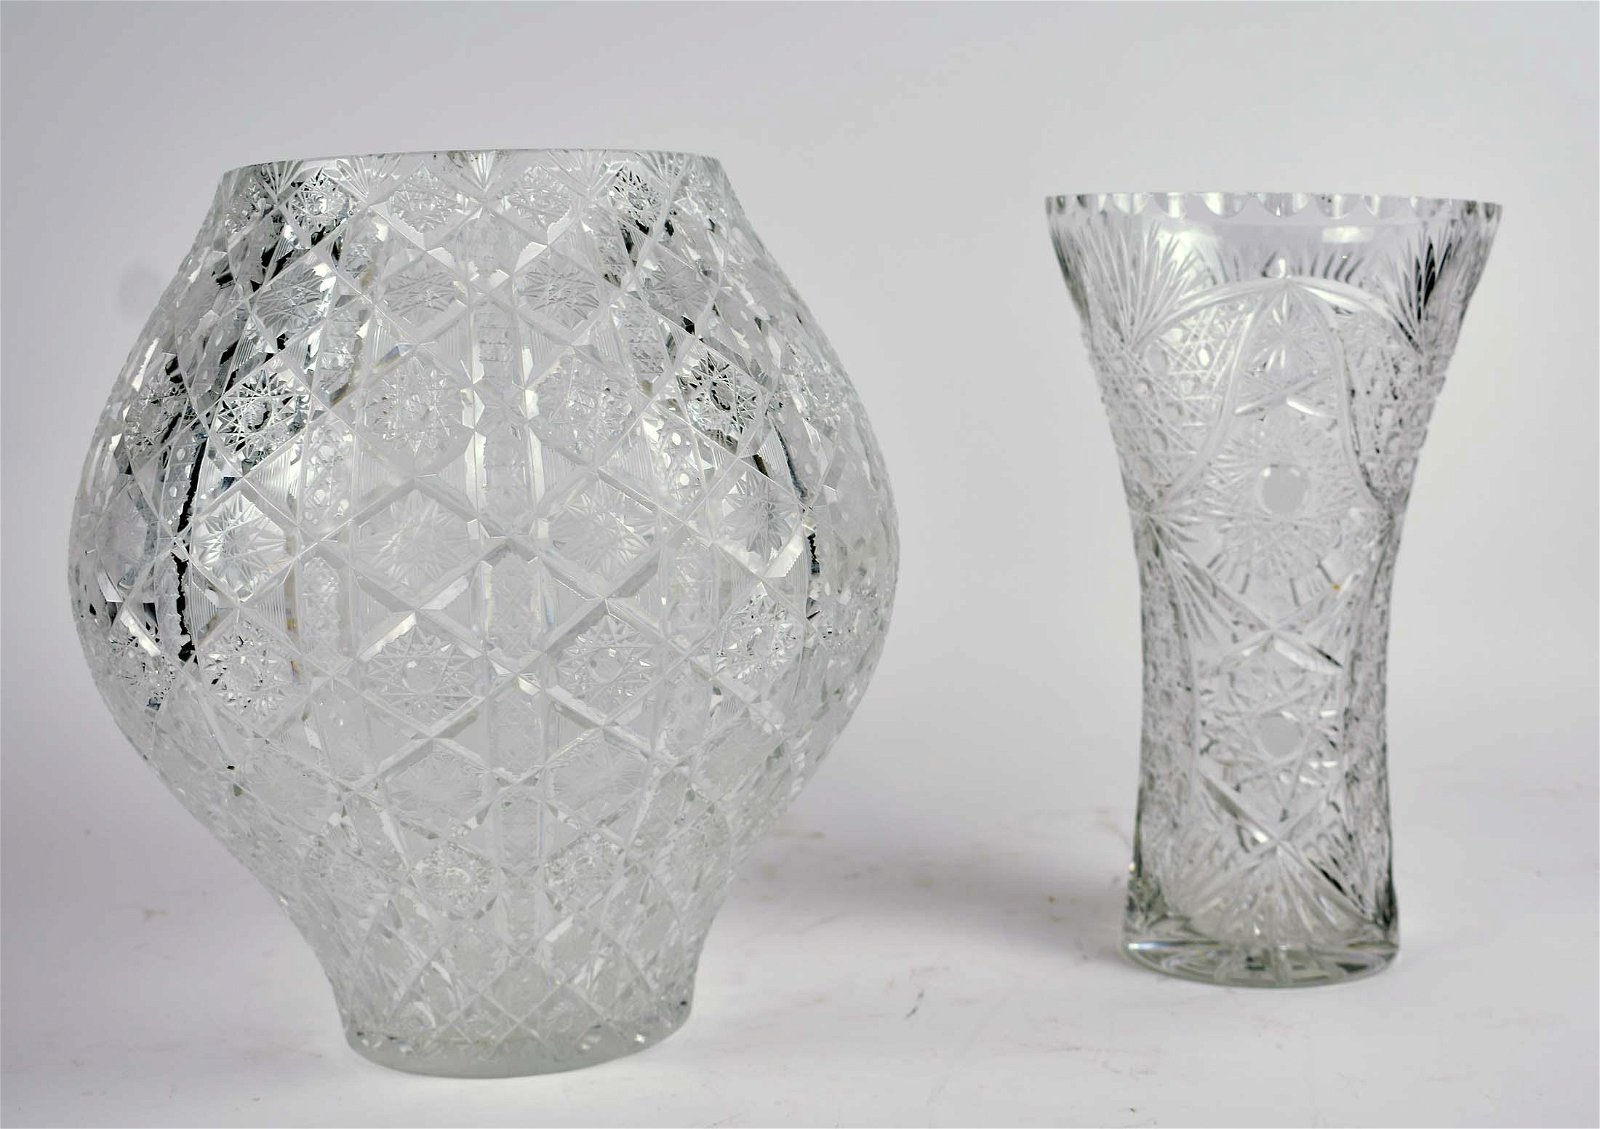 CONTINENTAL OVOID FORM CUT GLASS VASE